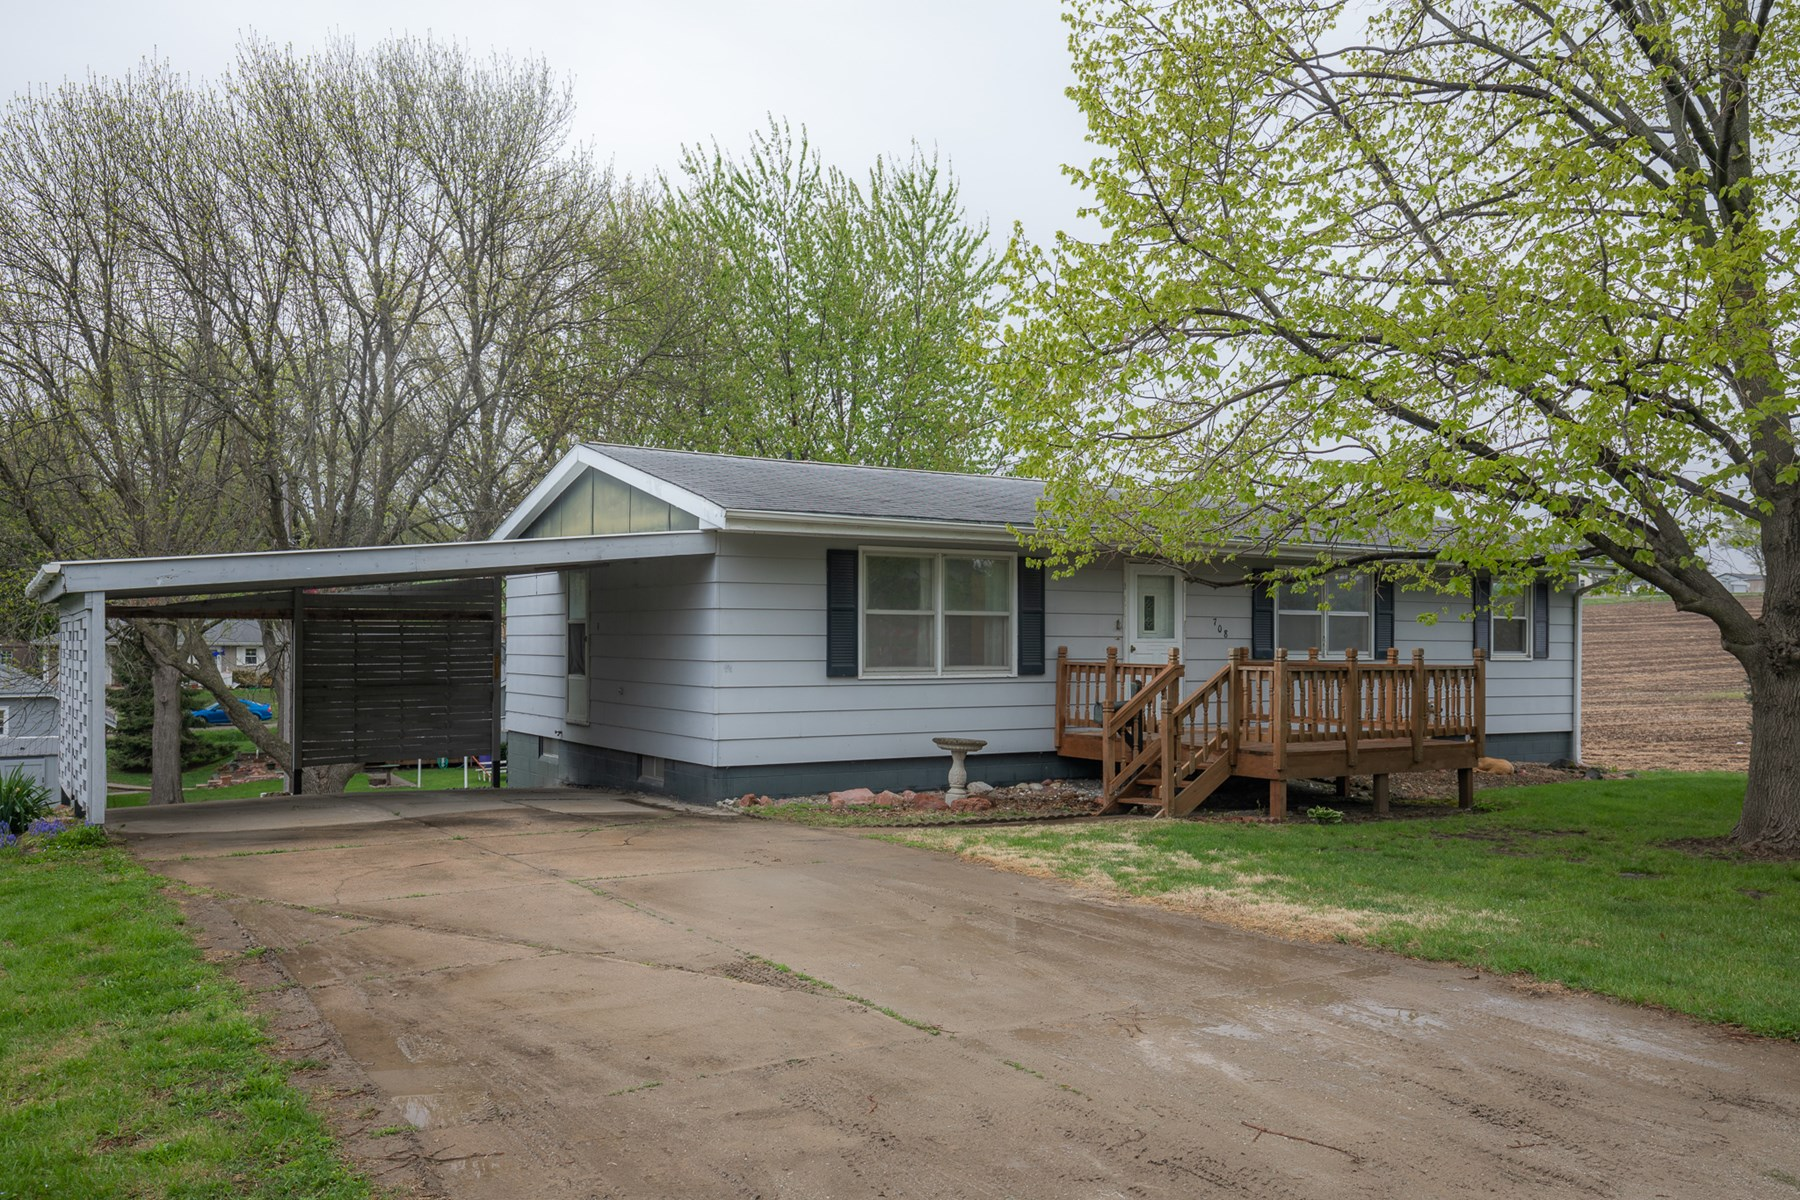 Home for sale in Emerson, Iowa